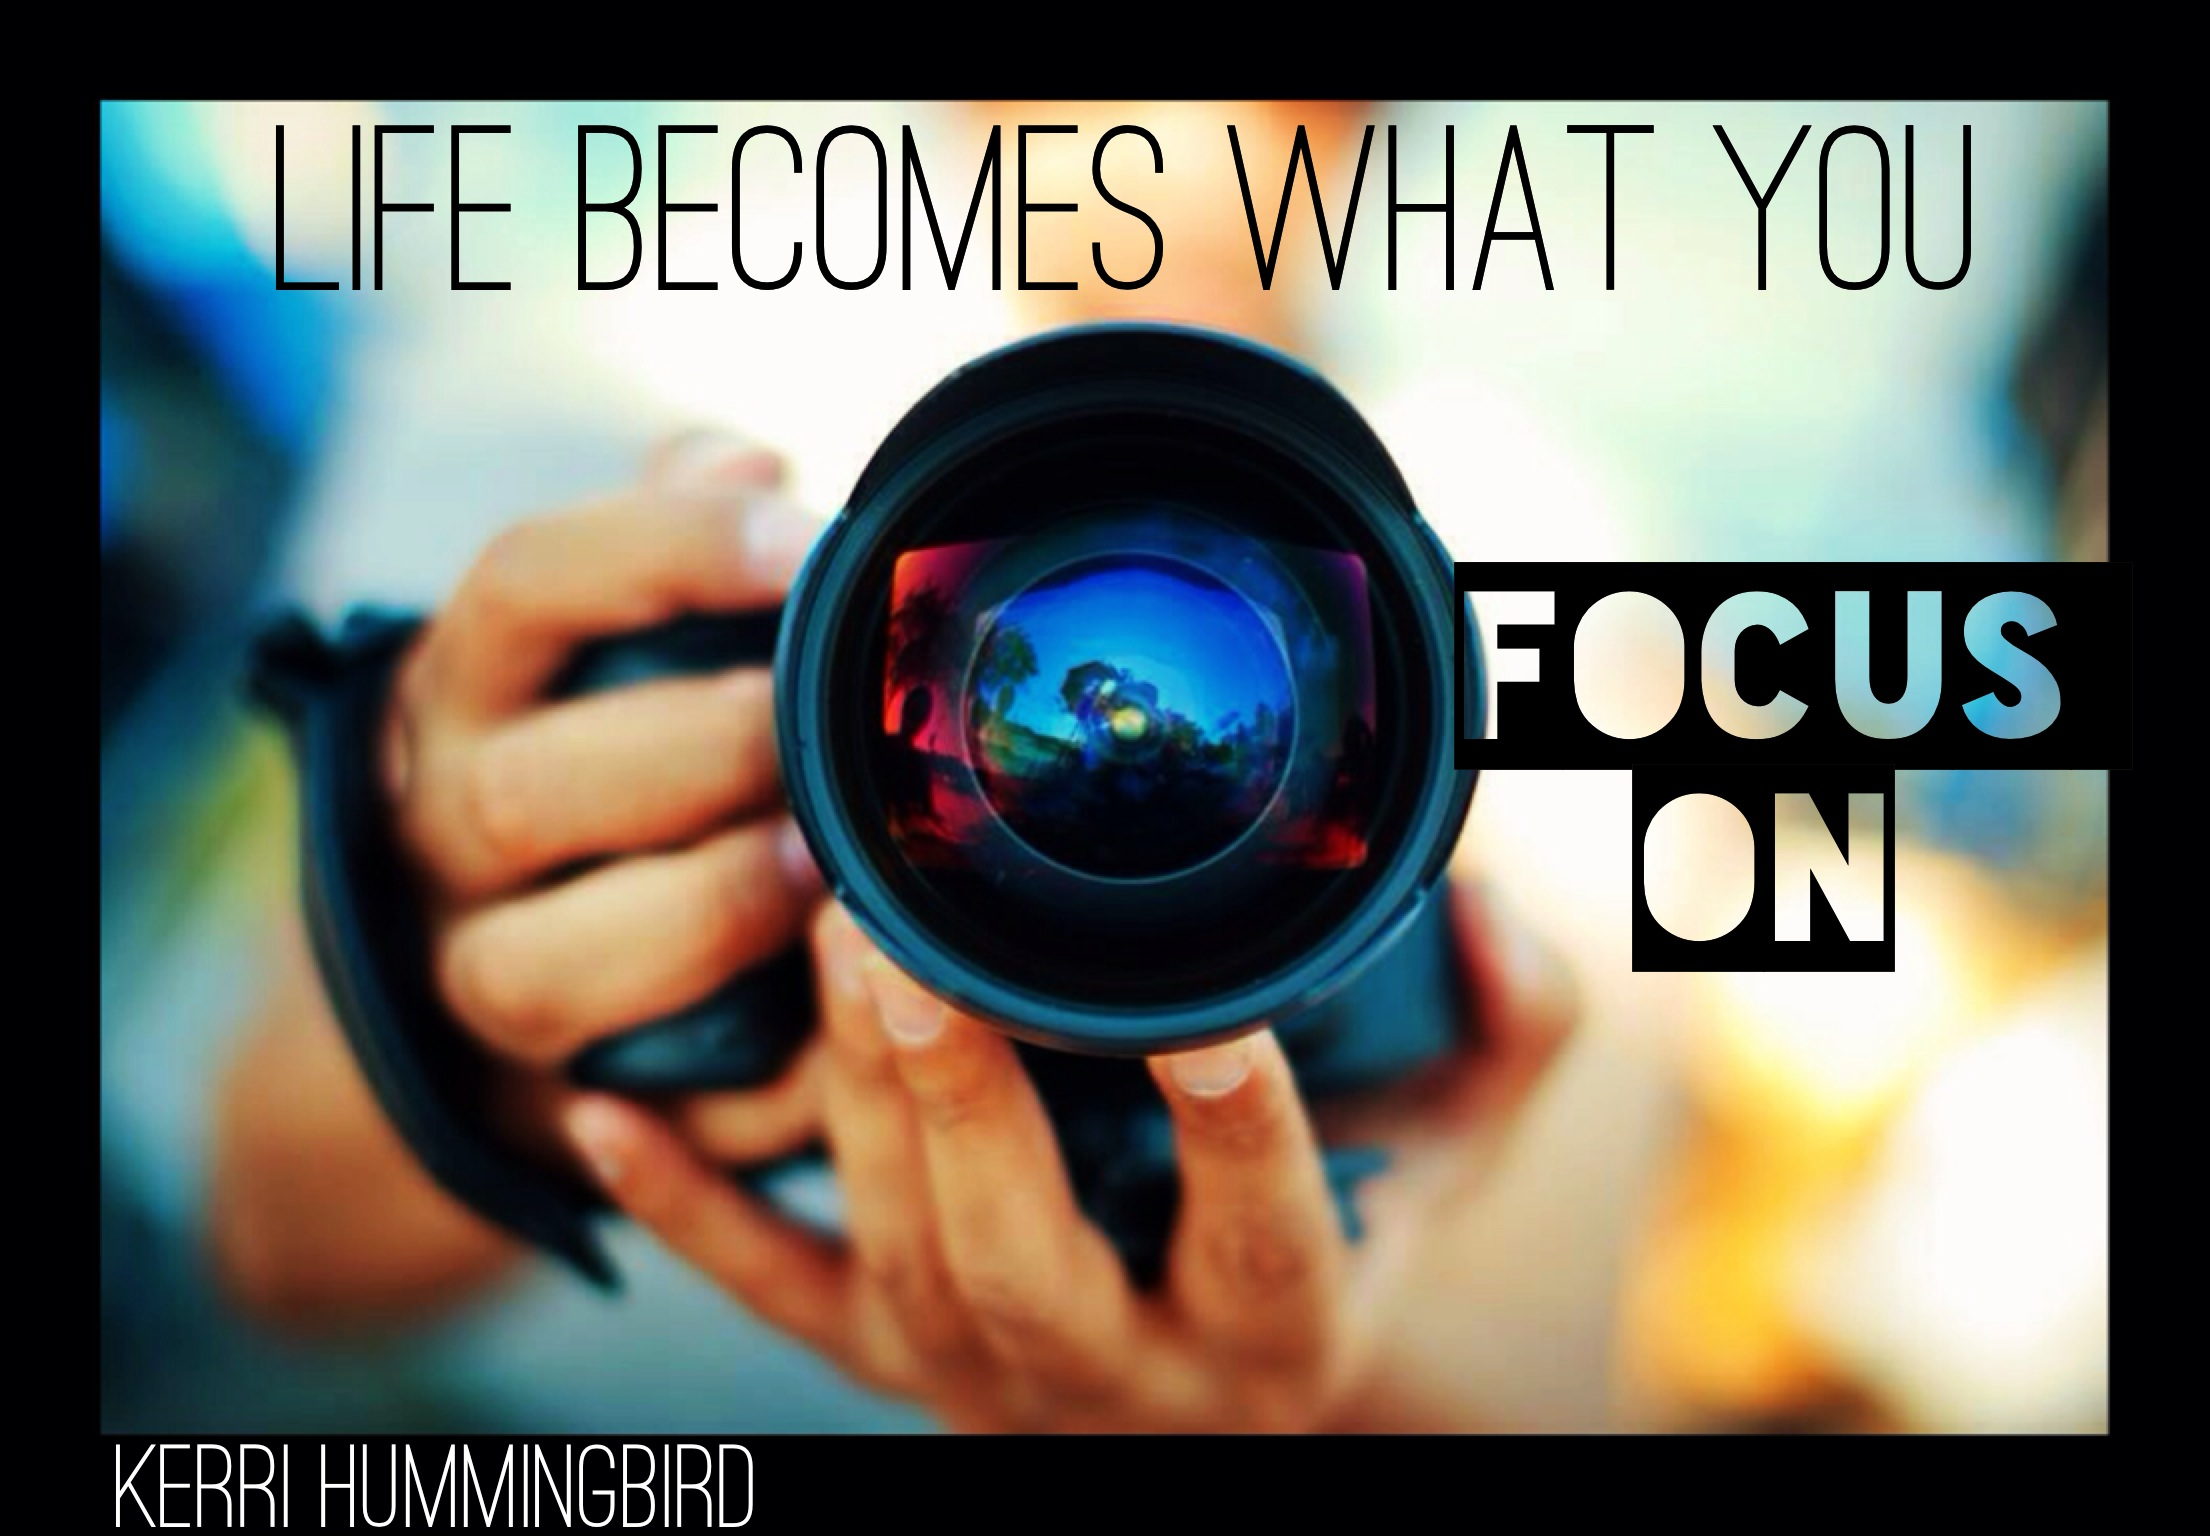 What You Focus On Creates Your Reality